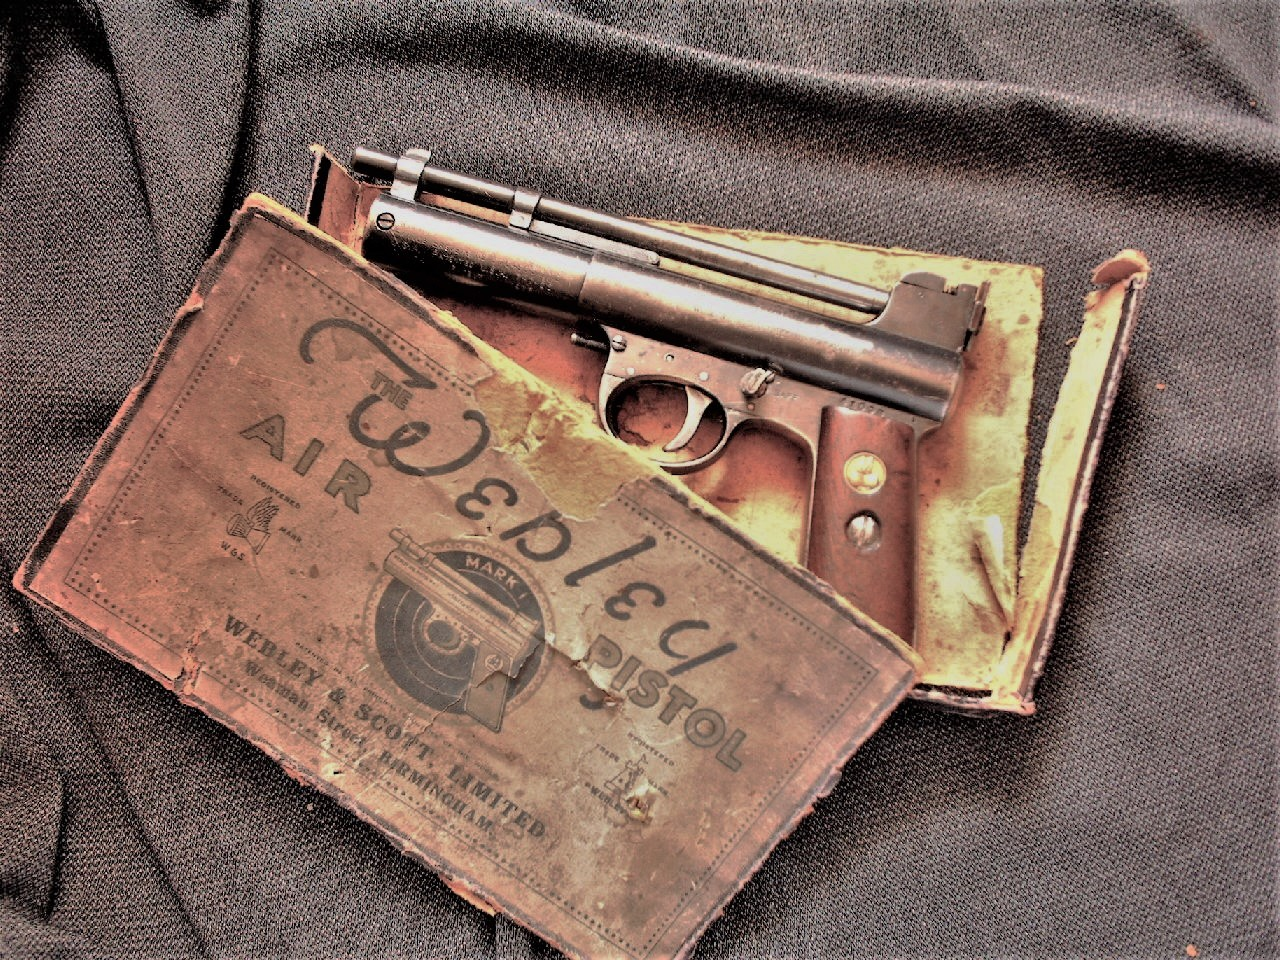 typical webley pistol